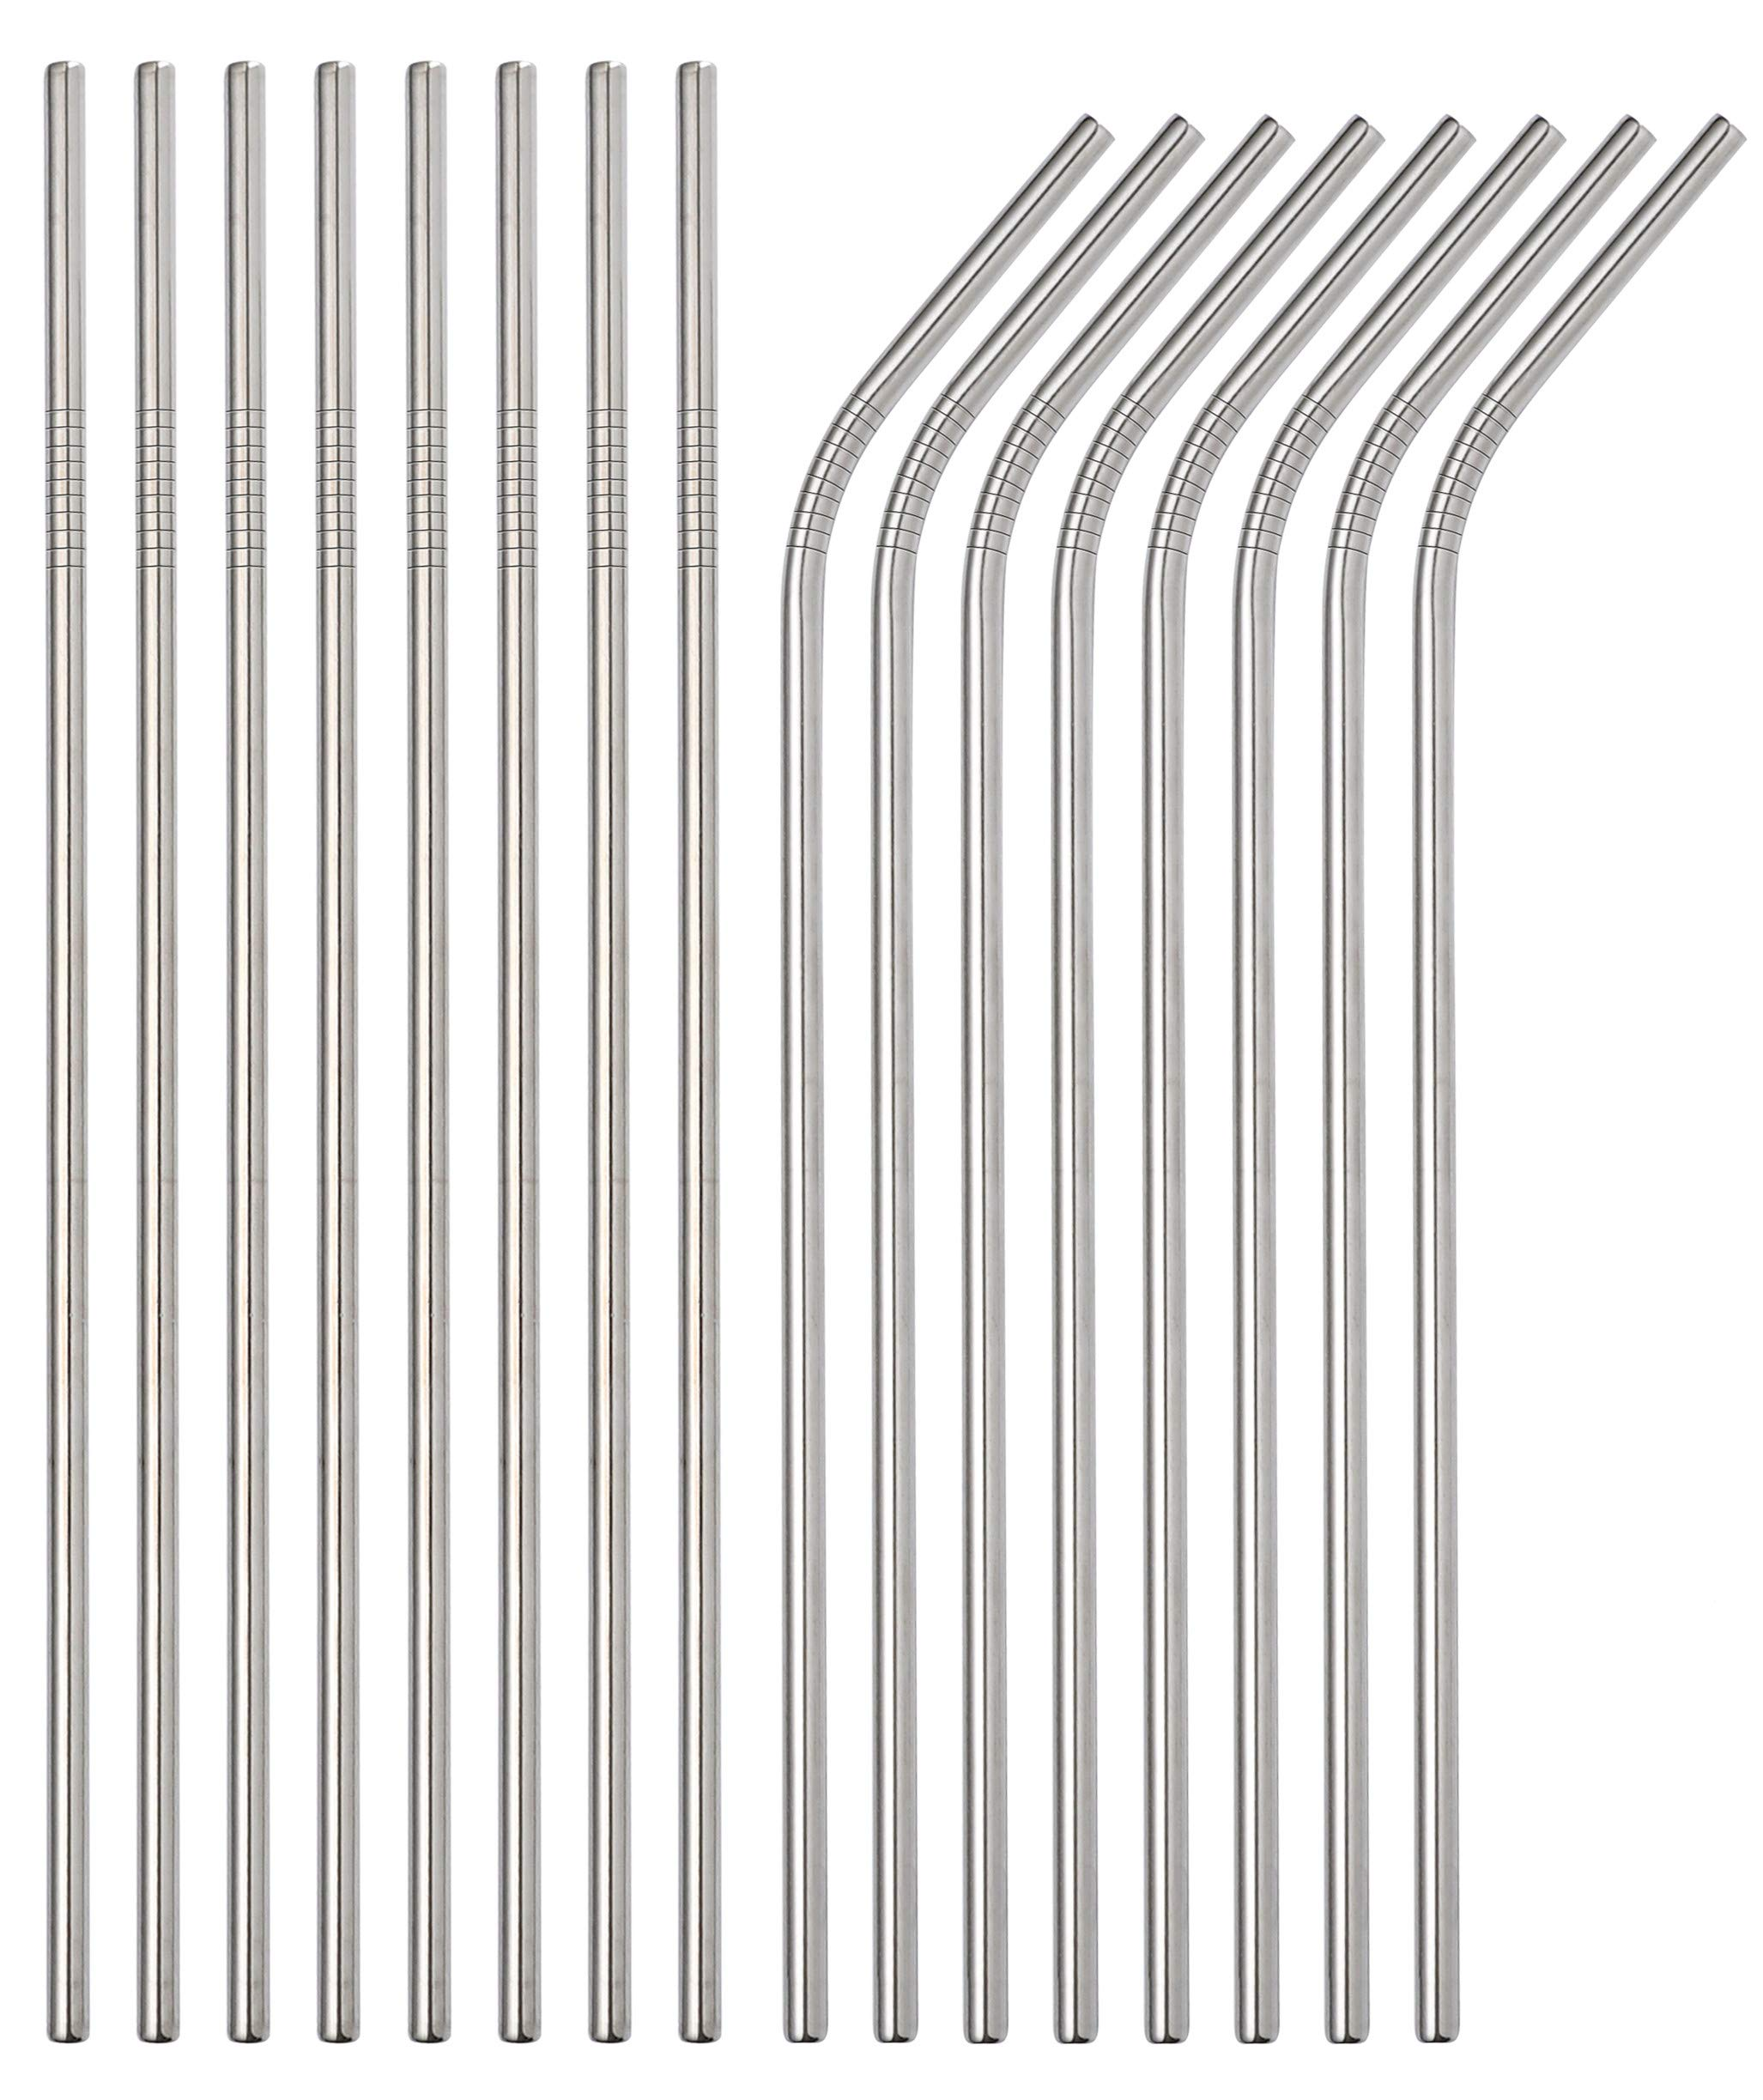 Sunwinc Stainless Steel Straws, 400 Pcs Reusable Metal Straws.For Tumblers Yeti Cups Travel Mugs,Reusable Rustproof Eco-Friendly Dishwasher